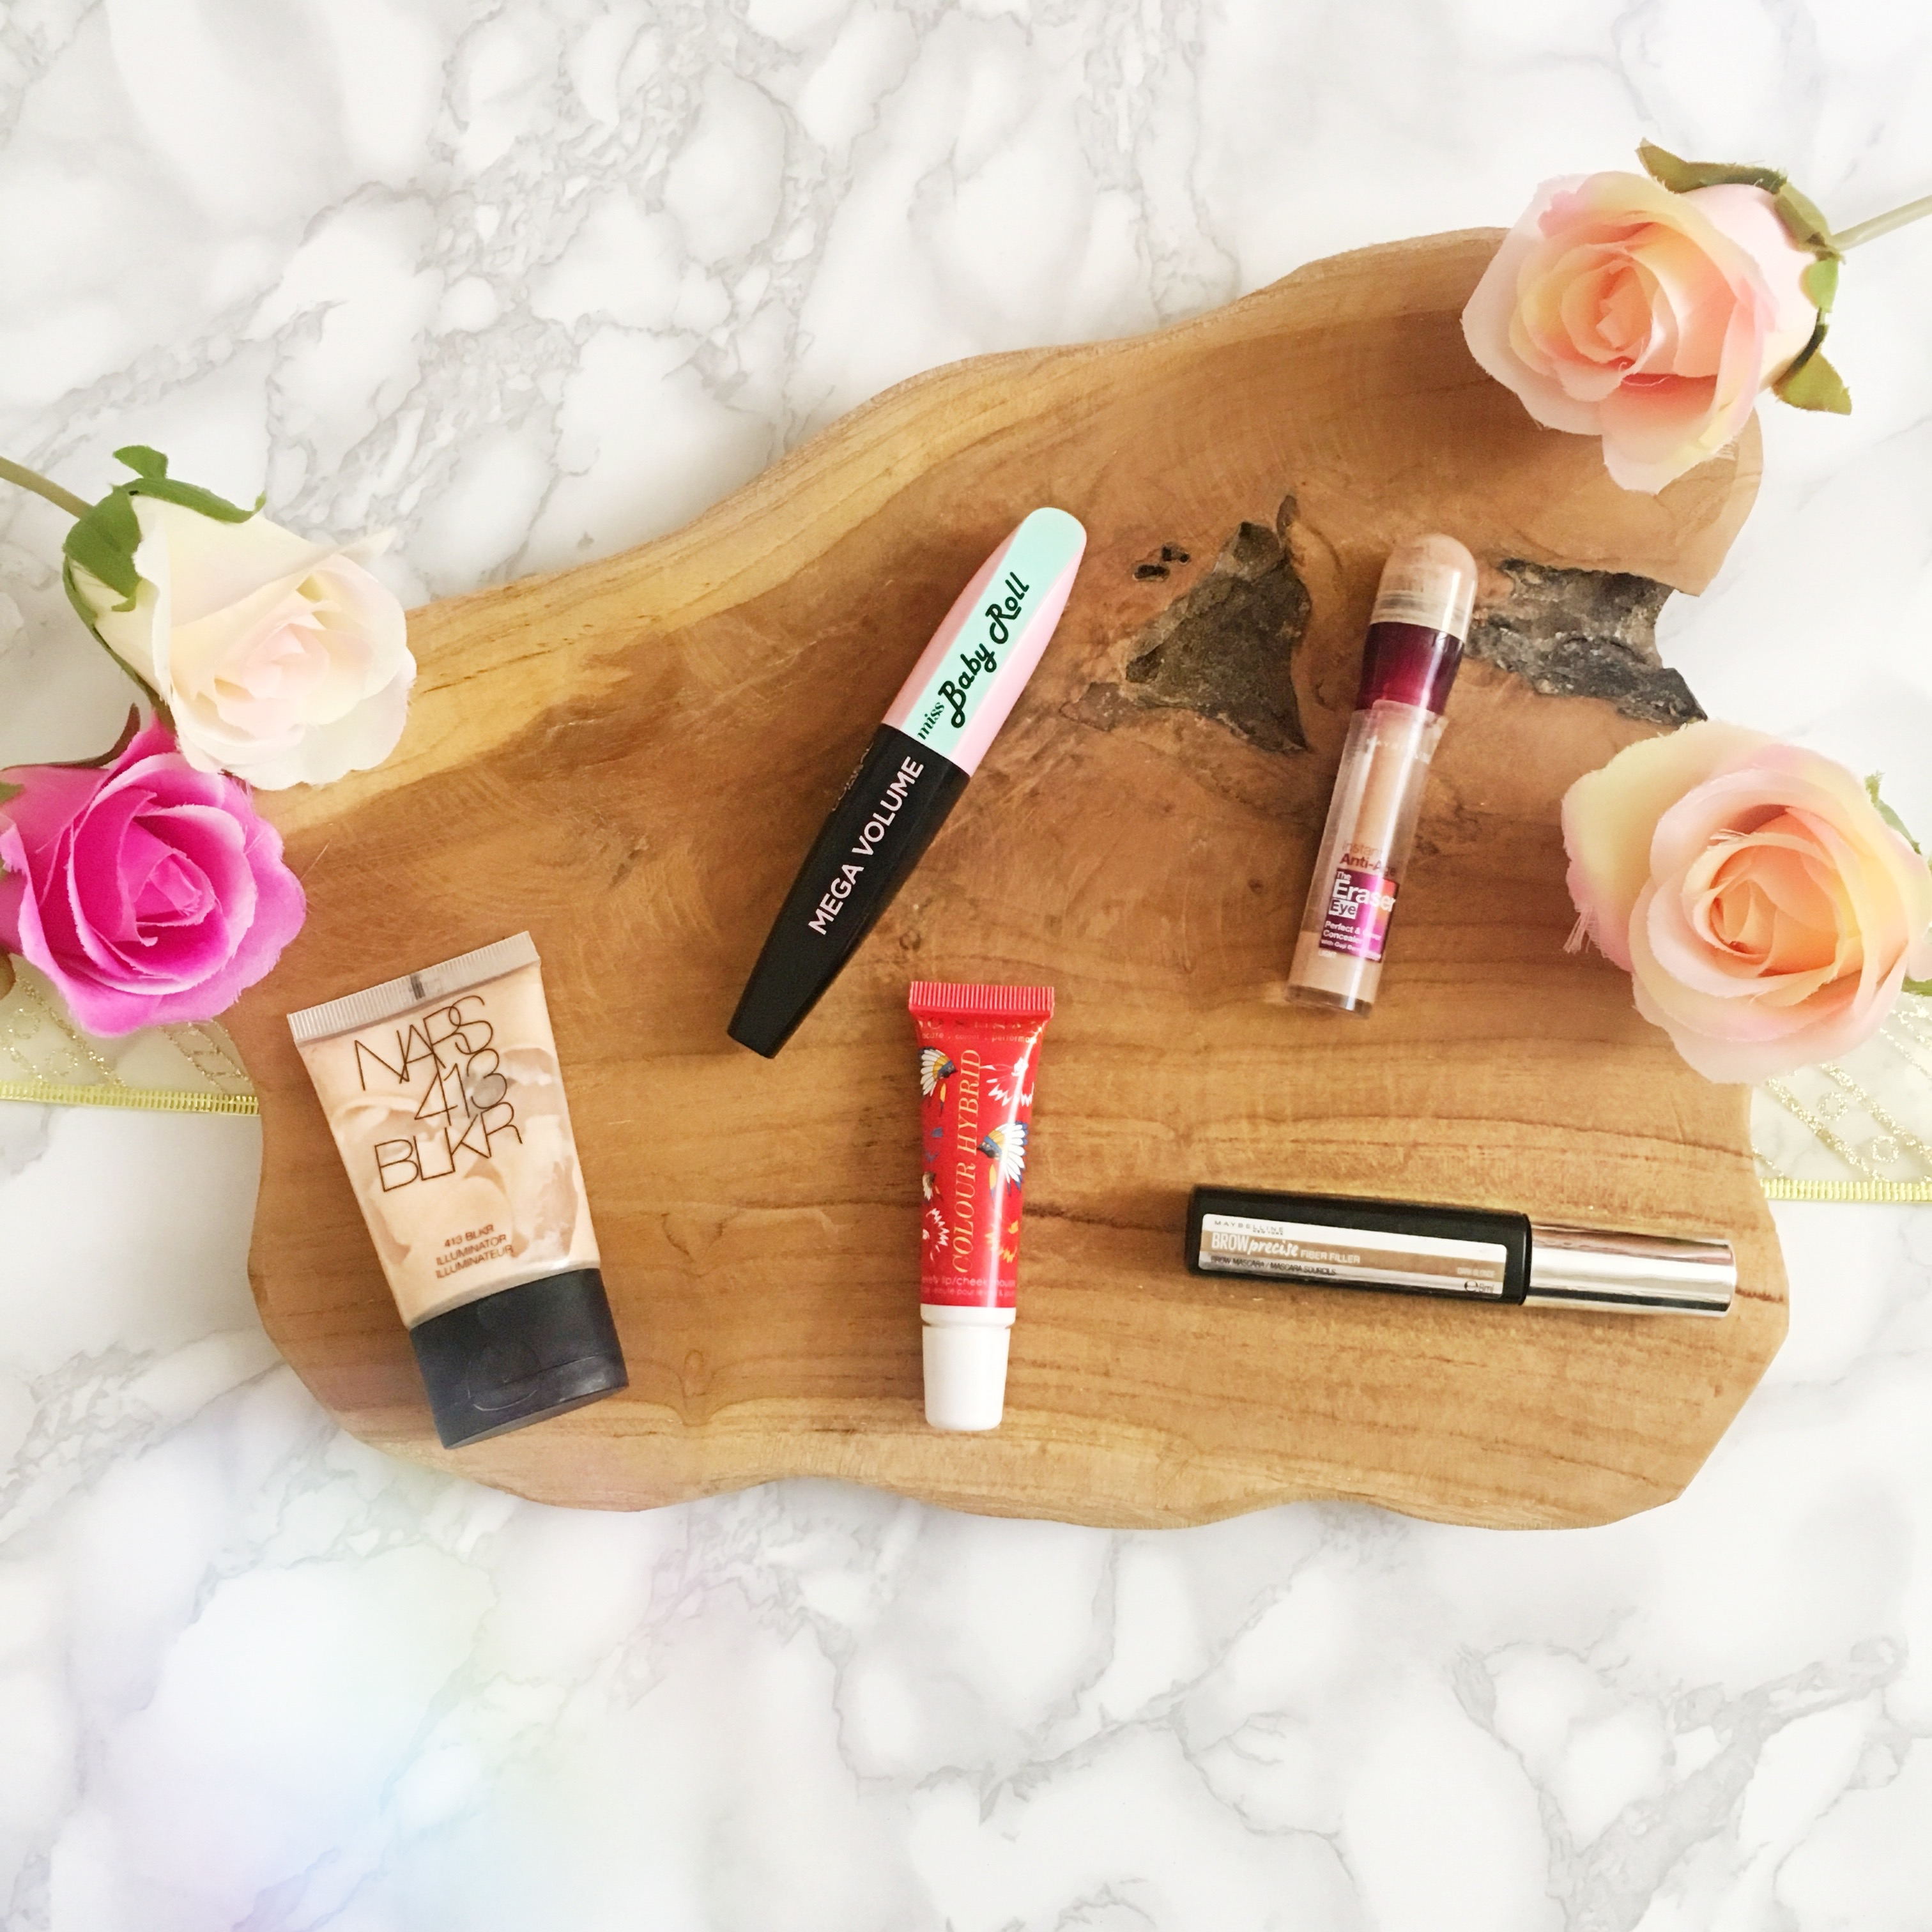 Five Product Makeup Routine